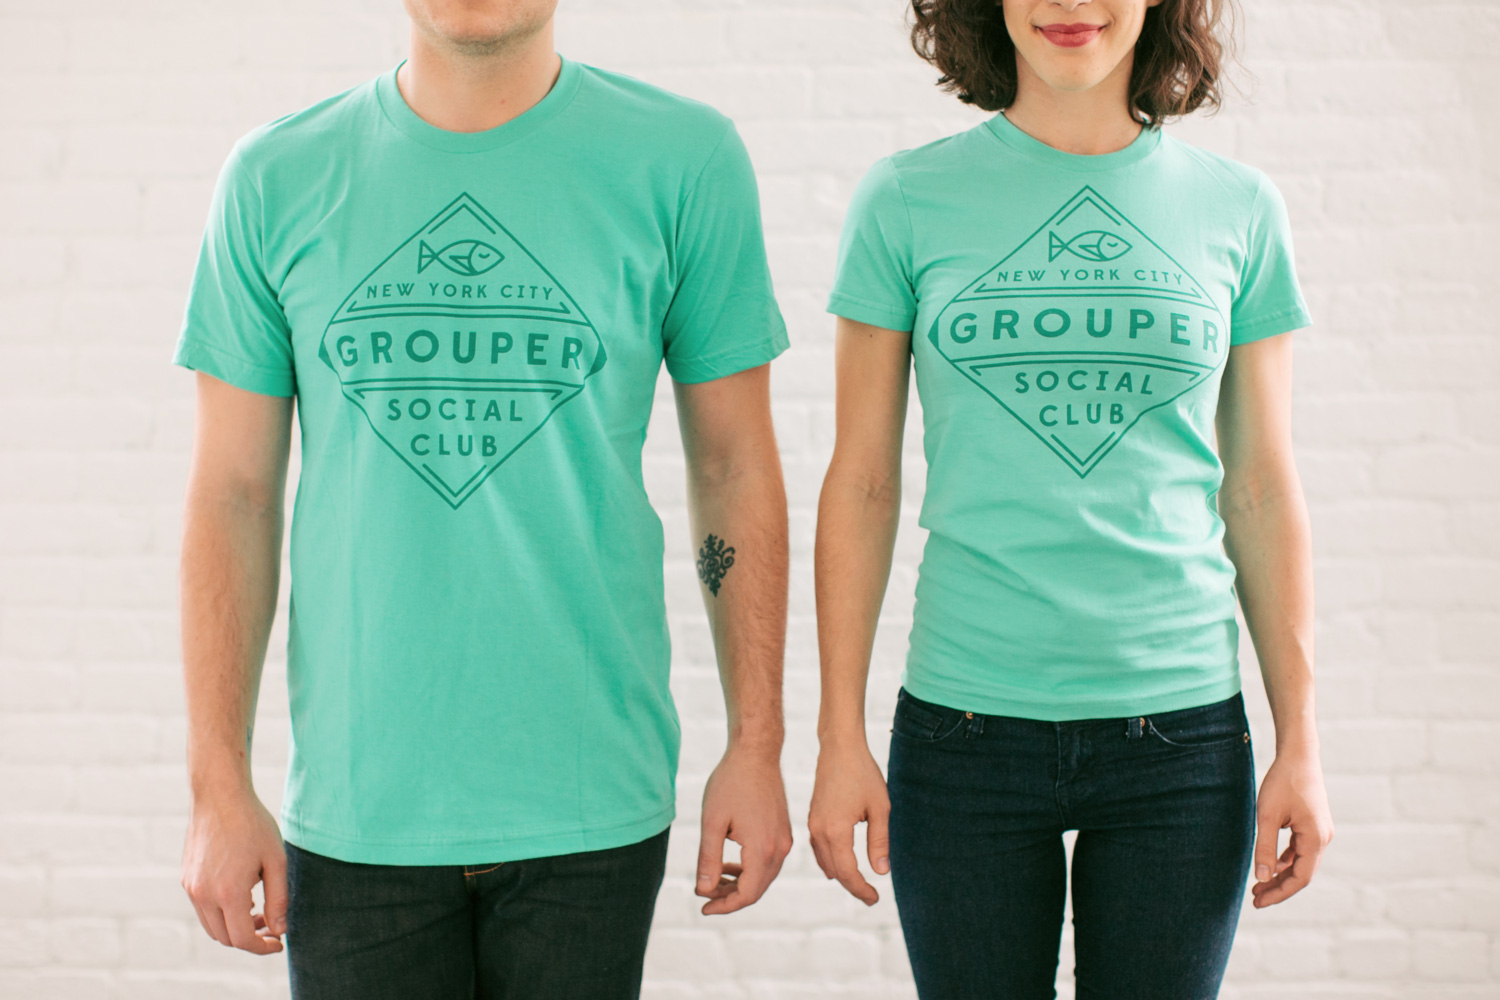 Grouper t-shirts and hats by Real Thread